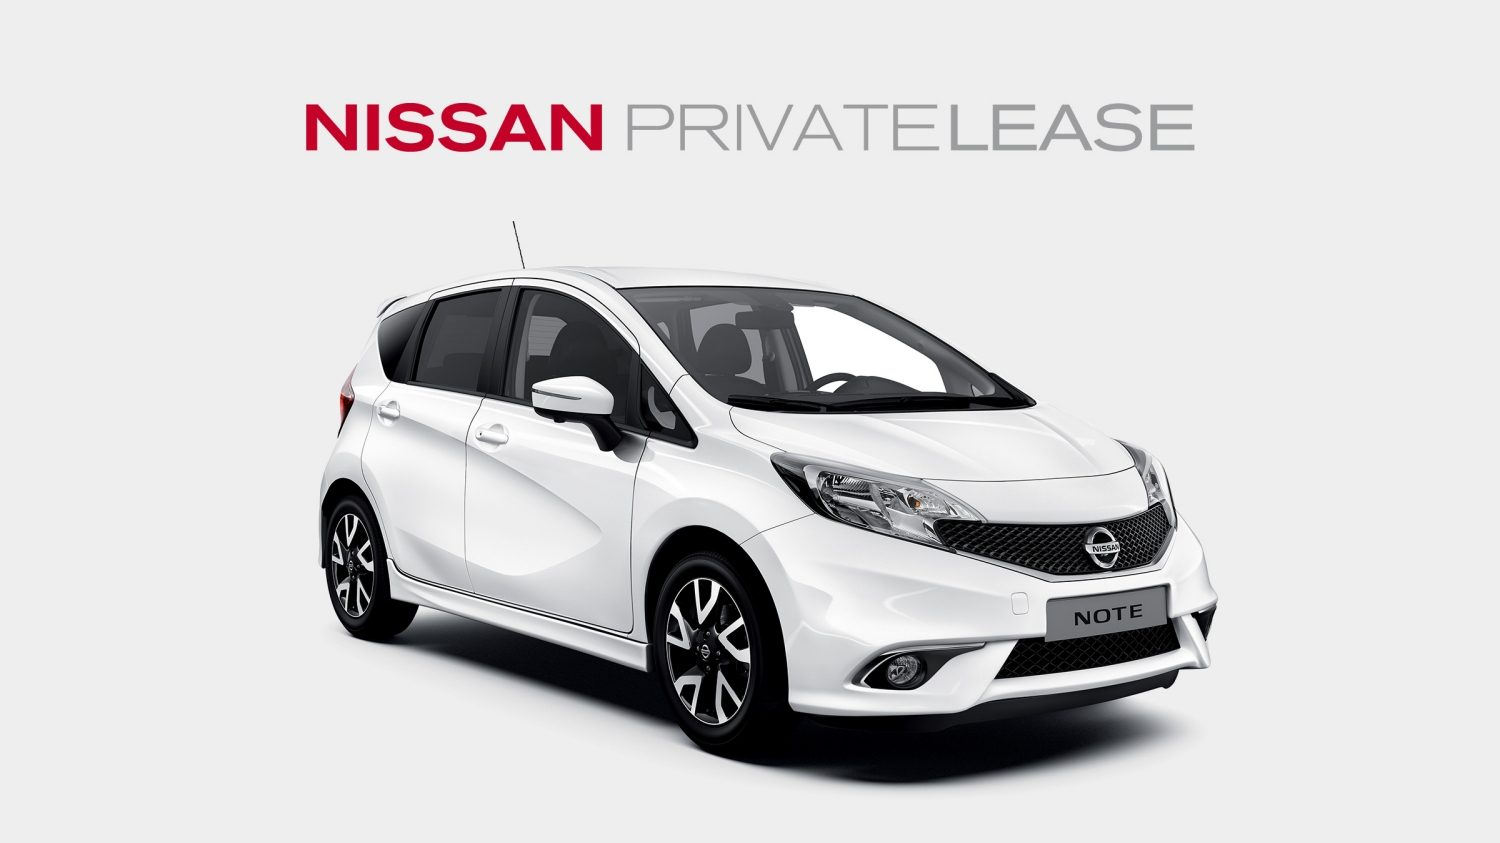 Nissan Private Lease Deal - NOTE